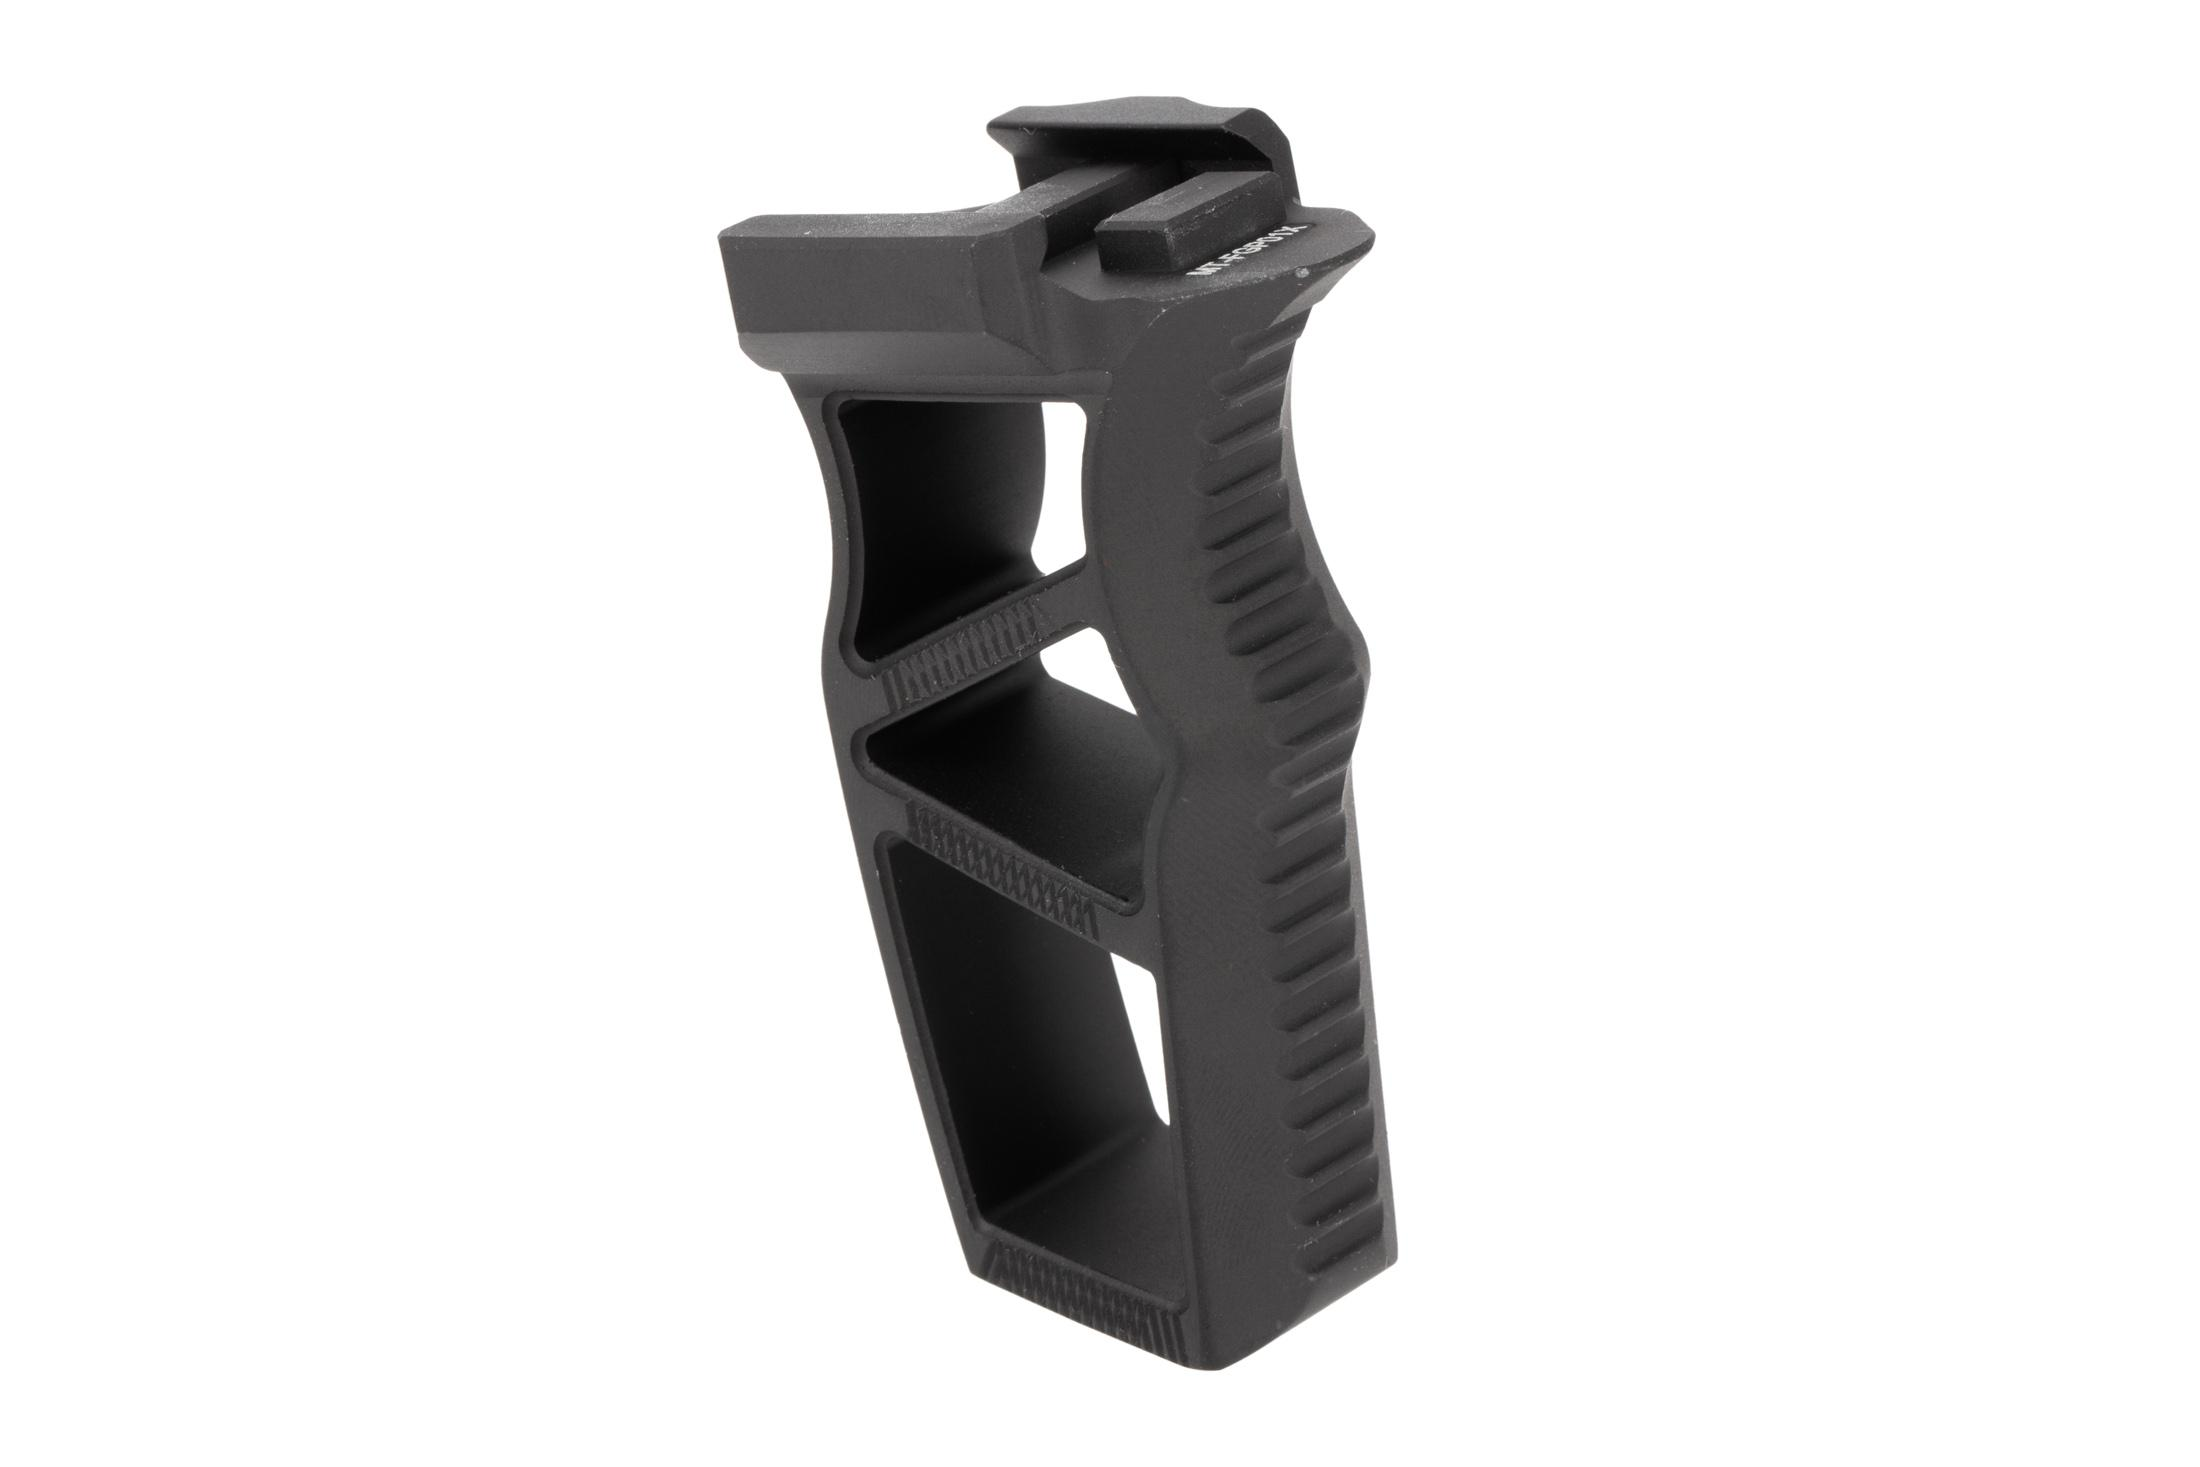 Leapers Ultra Slim picatinny foregrip in black machined from aluminum